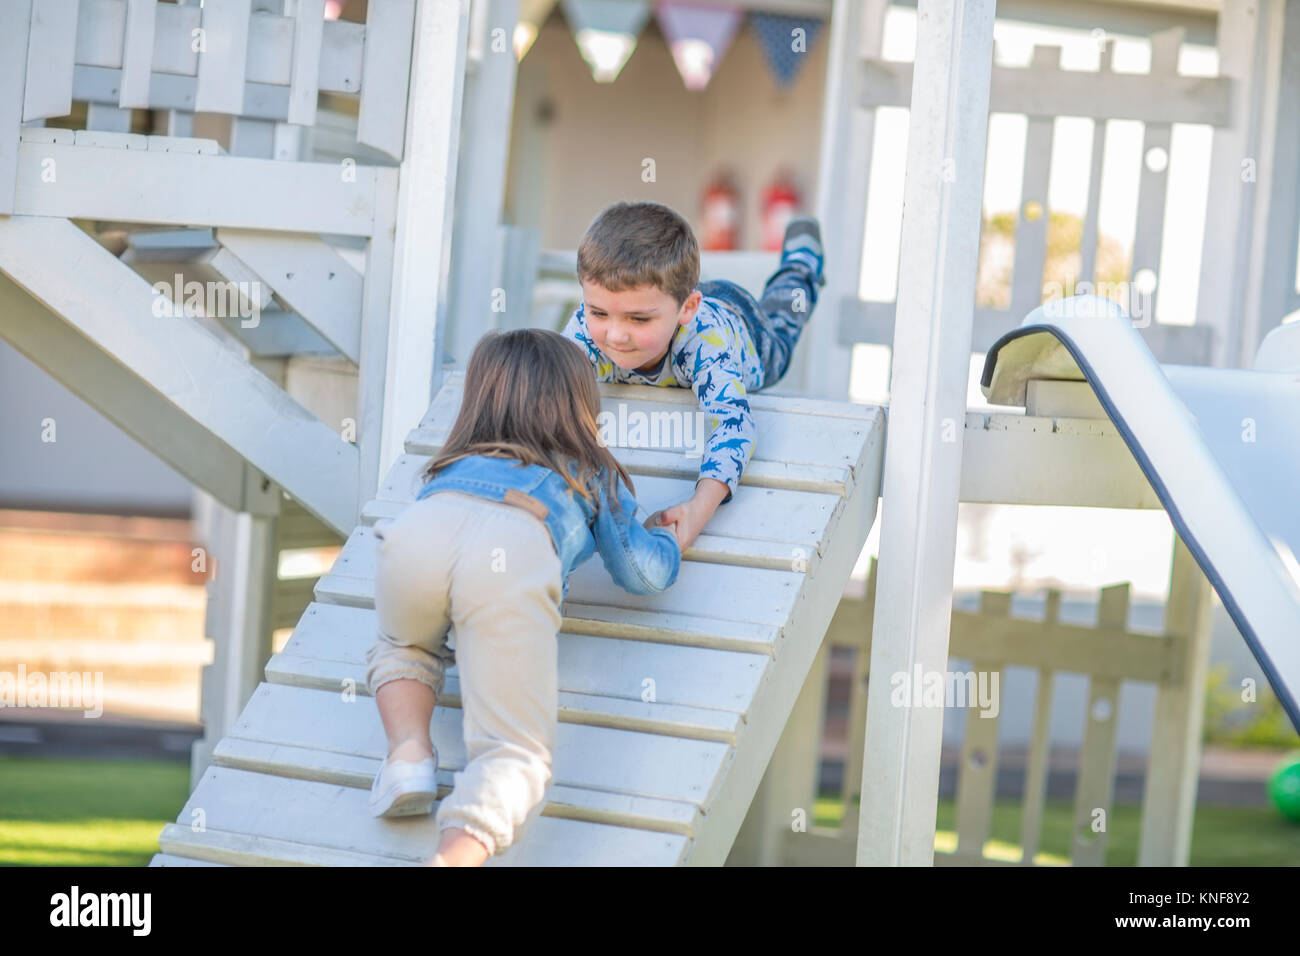 Girl and boy at preschool, helping hand to crawl up ramp on climbing frame in garden - Stock Image